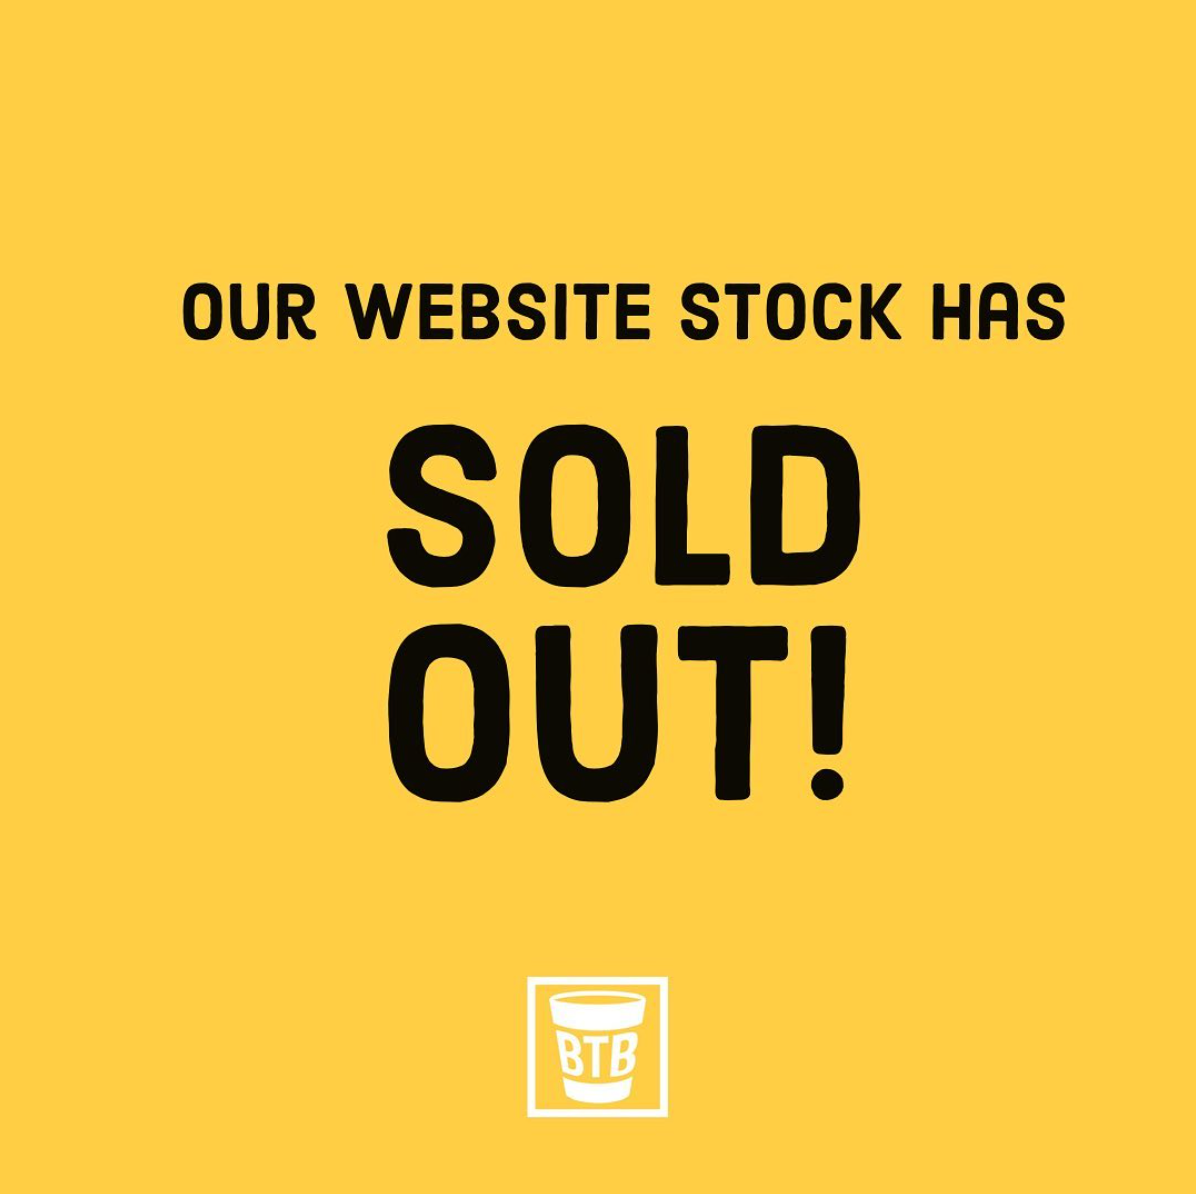 Our Website Stock Has Sold Out!